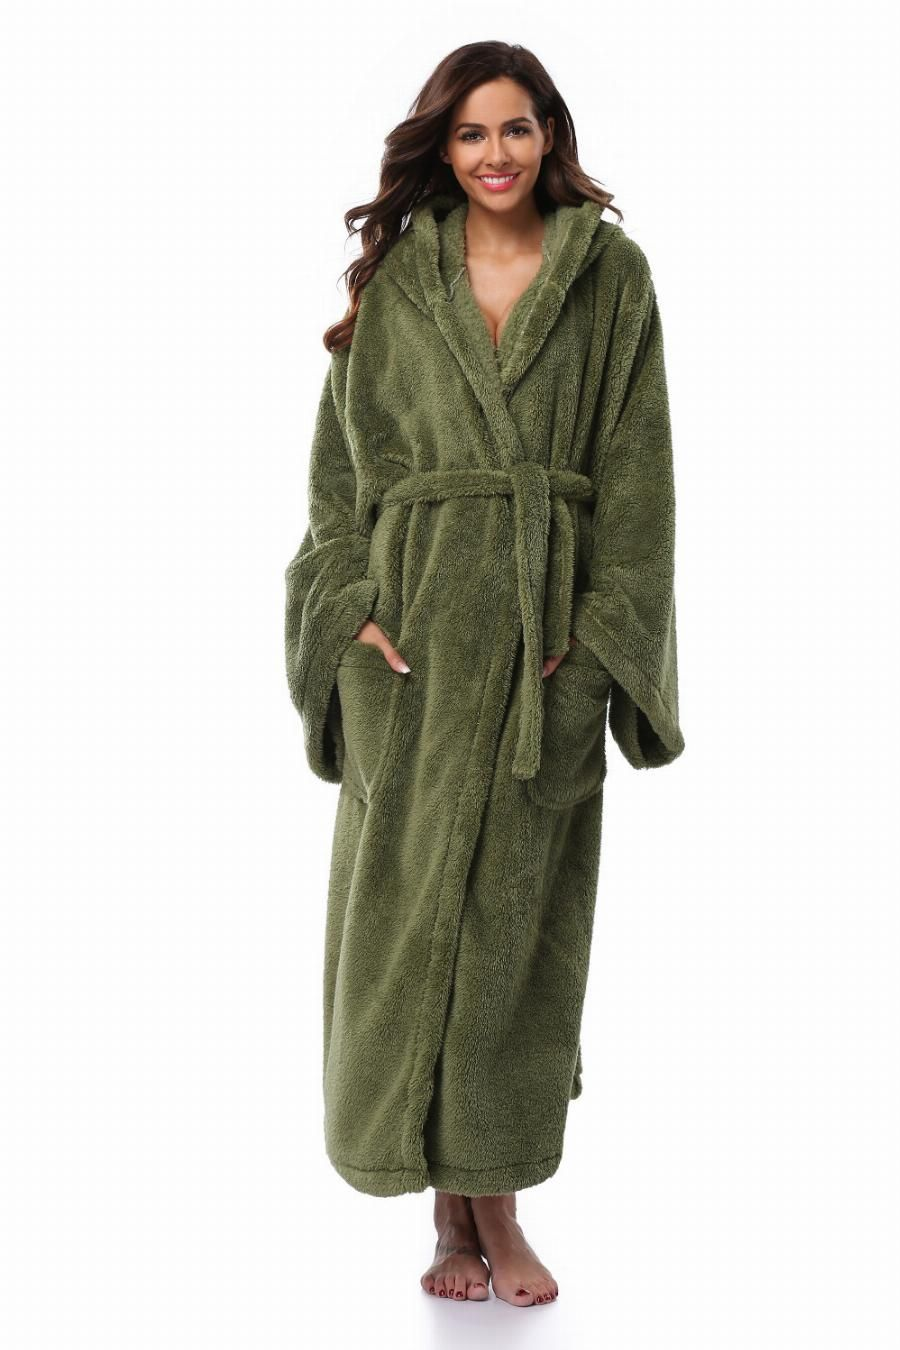 c4f17b210d Winter Thick Warm Women Robes 2017 Coral Fleece Sleepwear Long Robe Woman  Hotel Spa Plush Long Hooded Bathrobe Nightgown Kimono